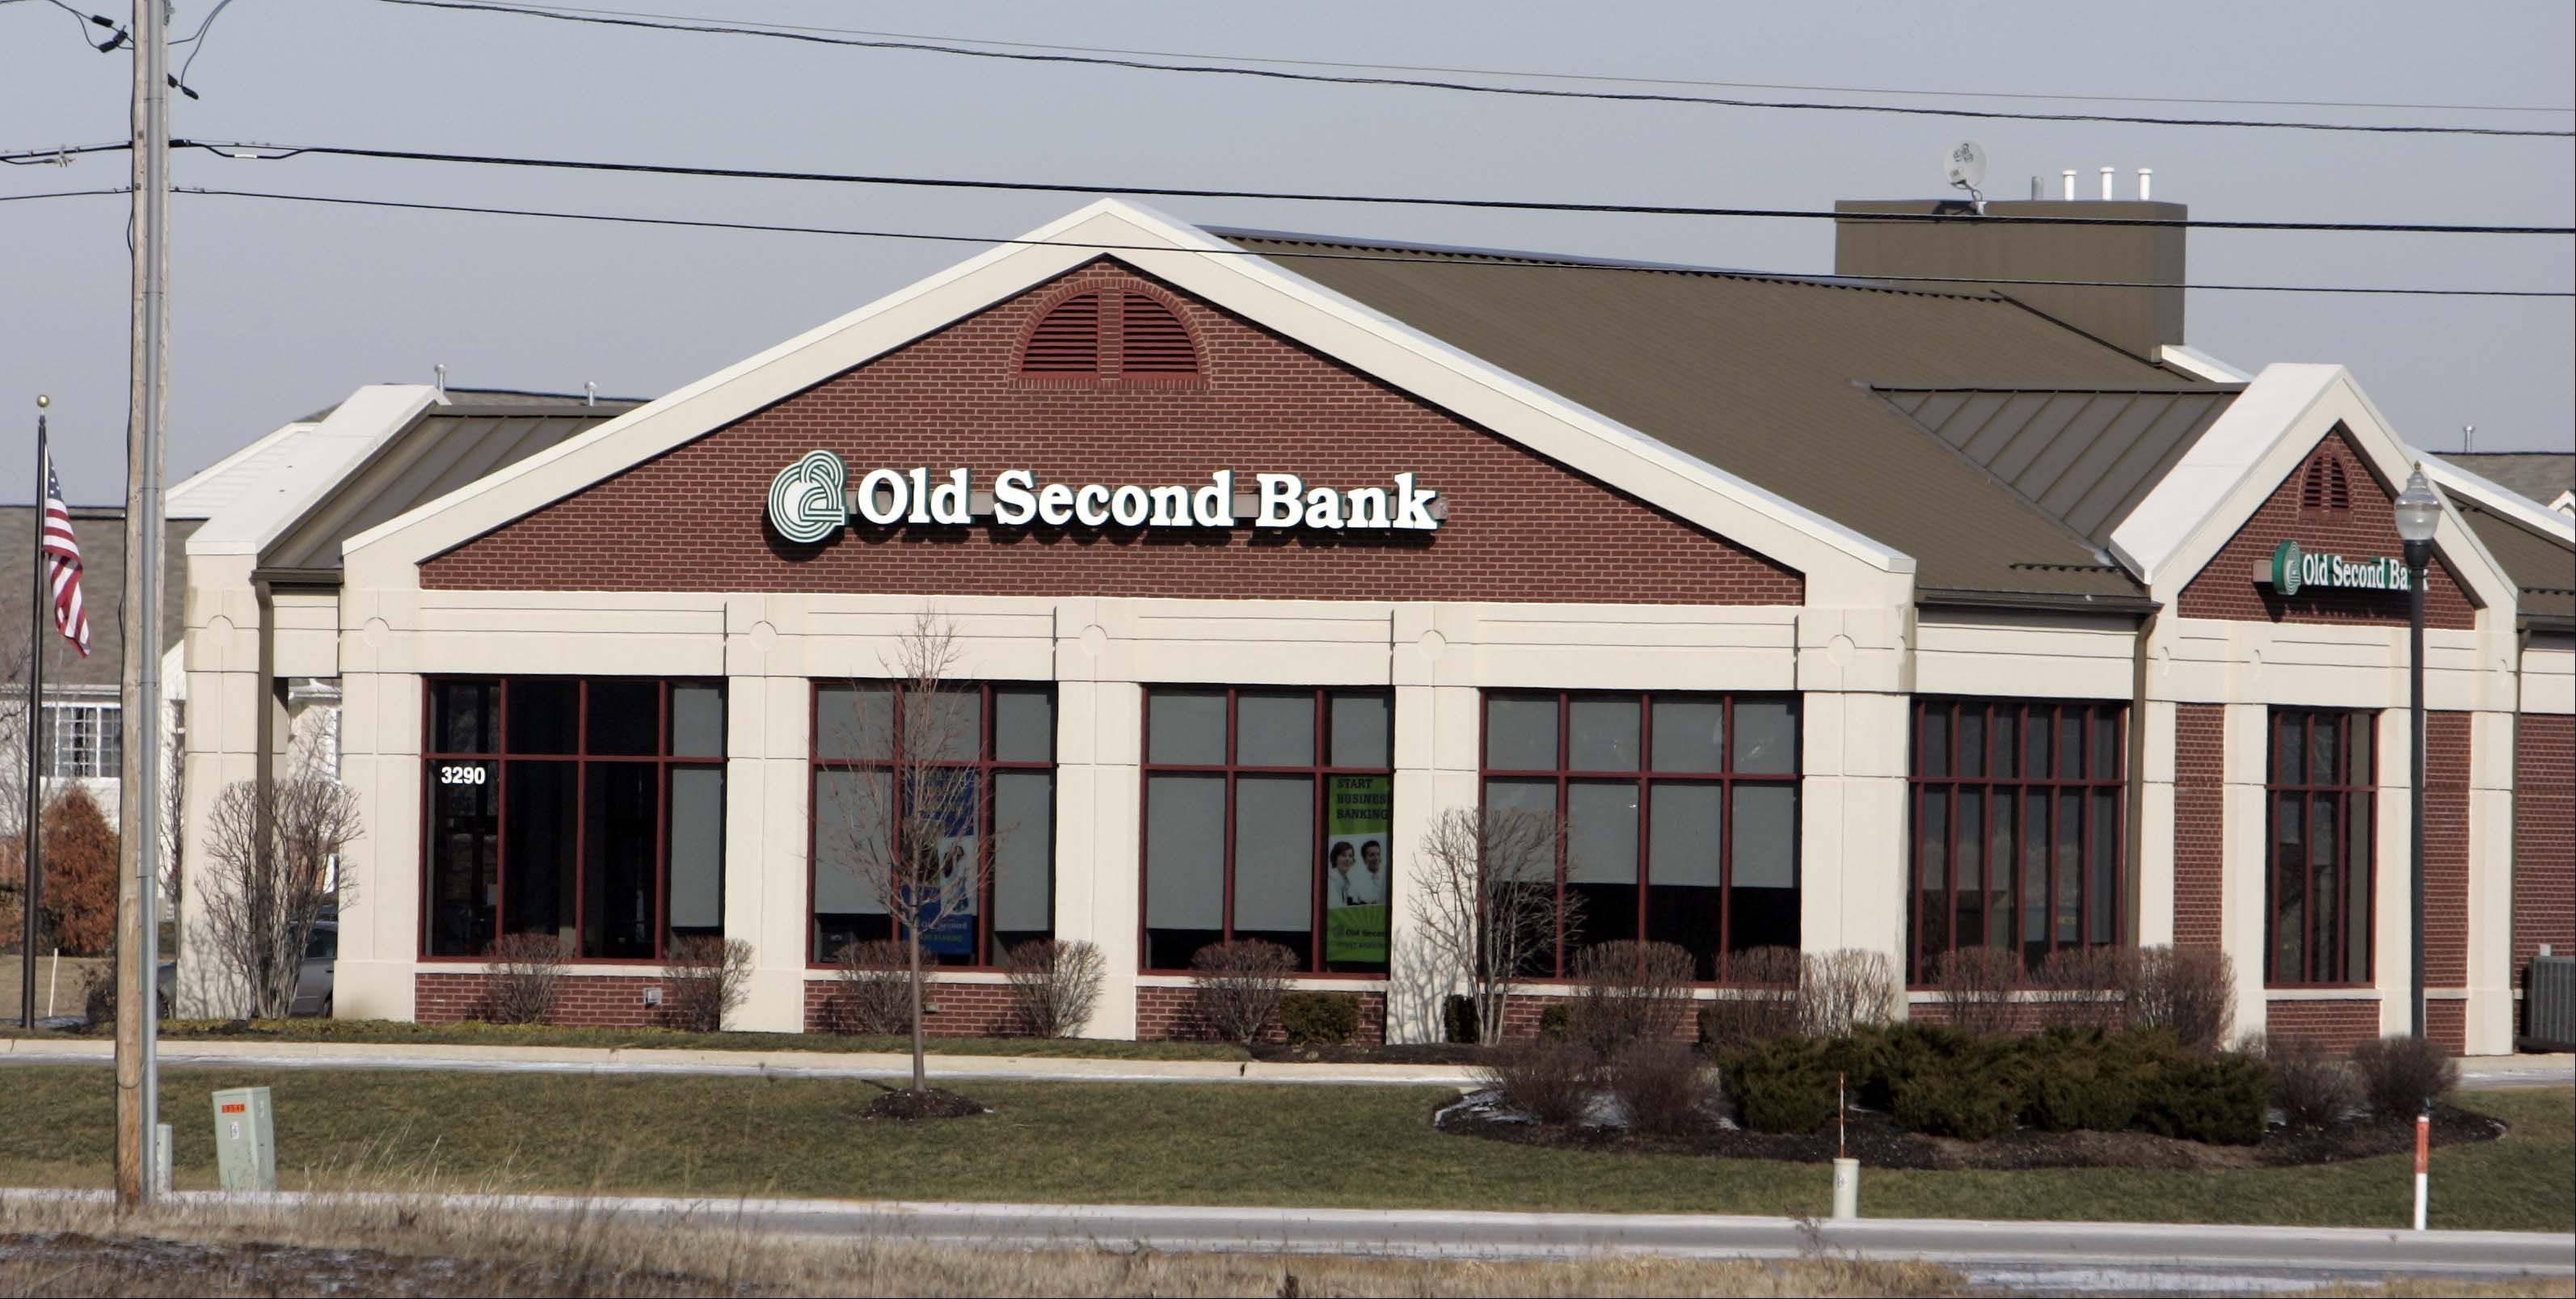 A man was arrested shortly after police say he robbed the Old Second National Bank on Route 20 at Nesler Road on the far west side of Elgin. The suspect was apprehended on Lake Street (Route 20) near Bartlett.